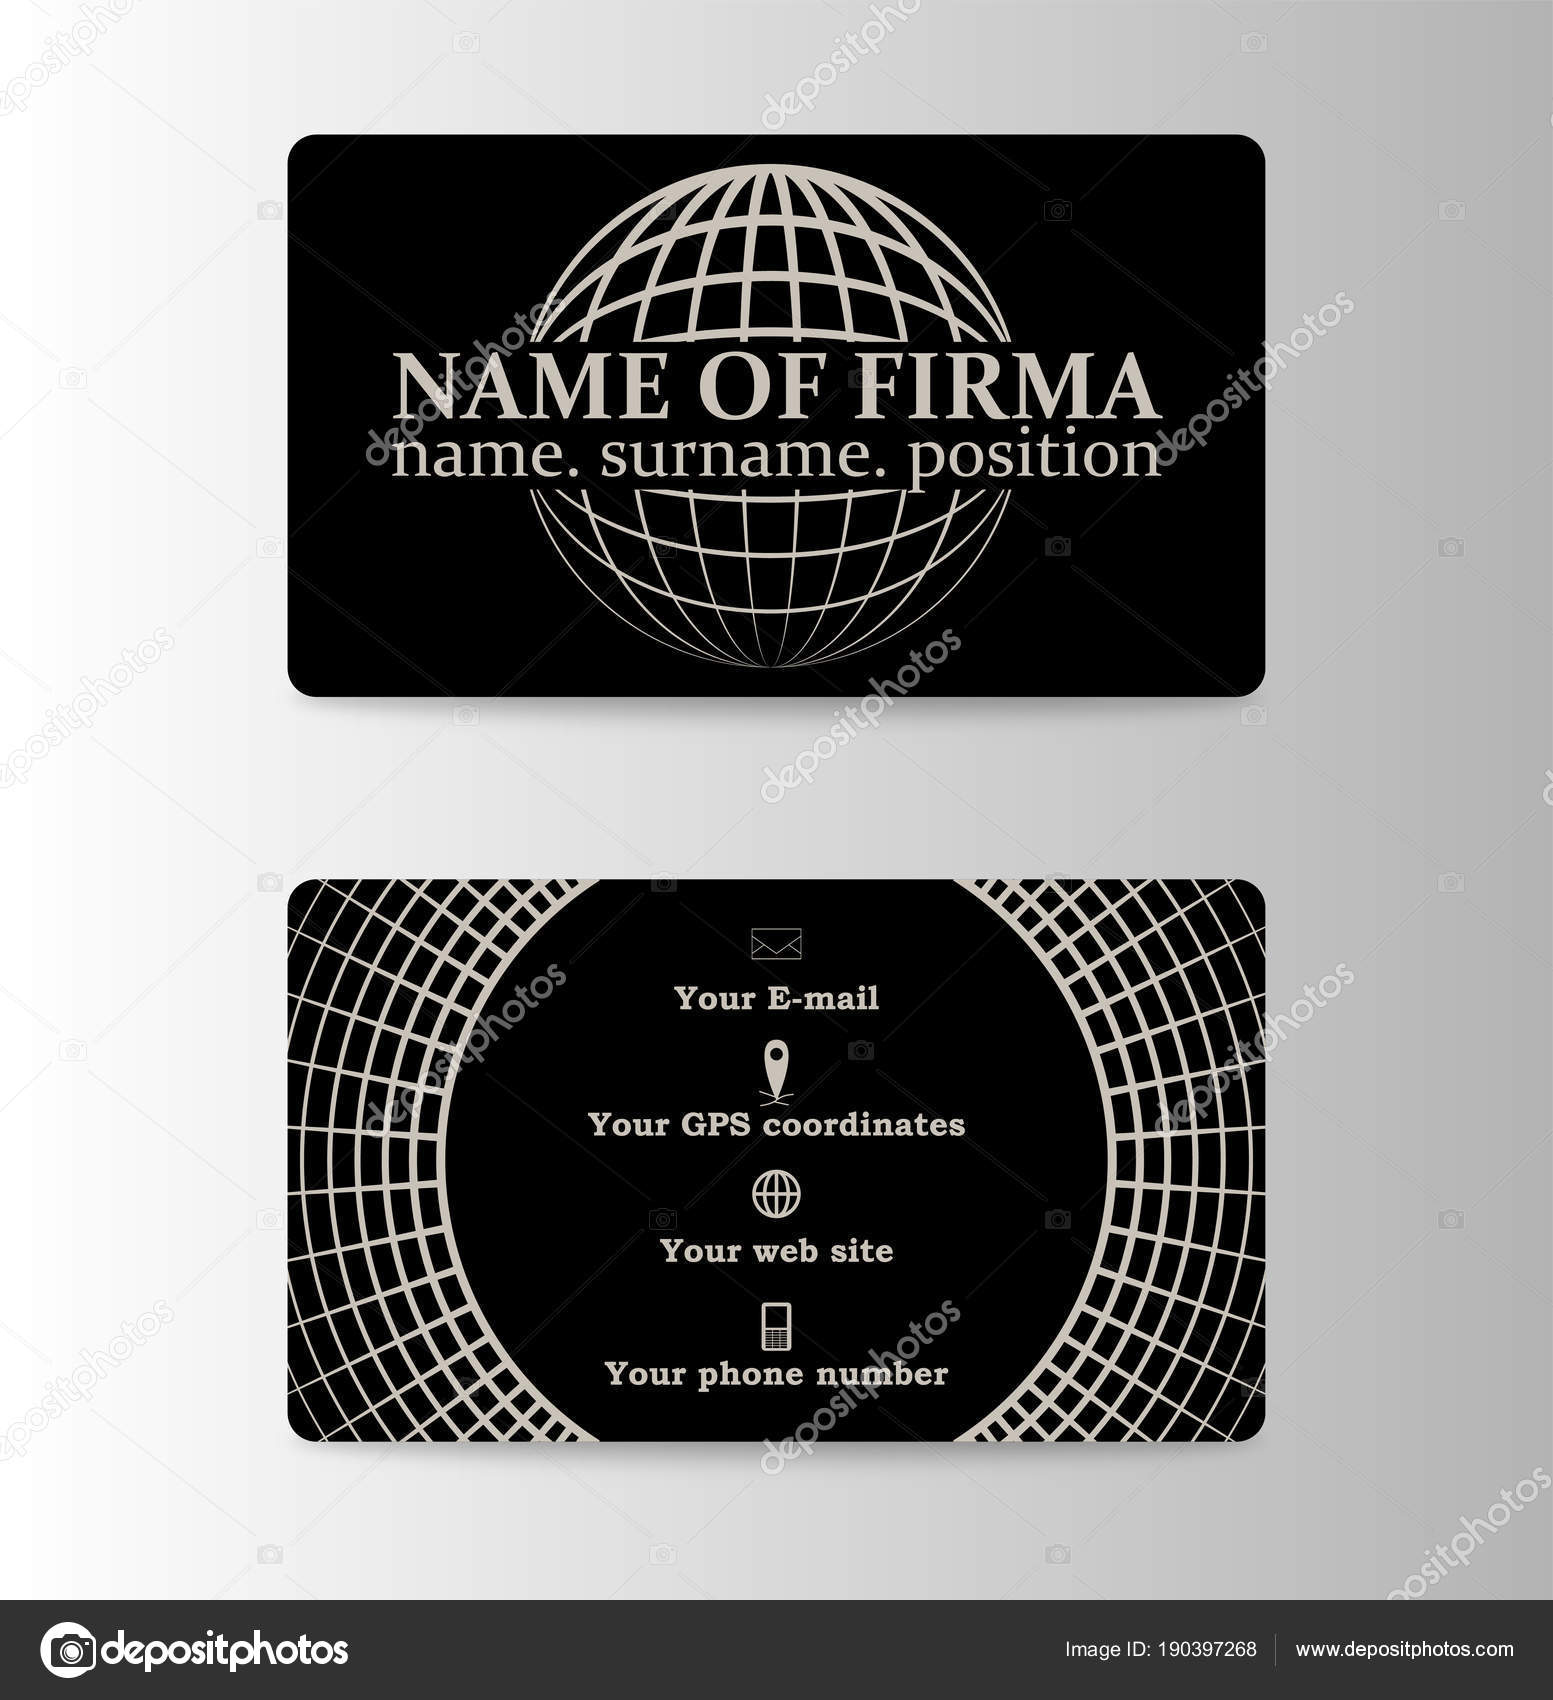 Dark business card template stock vector gorovits 190397268 dark business card template stock vector colourmoves